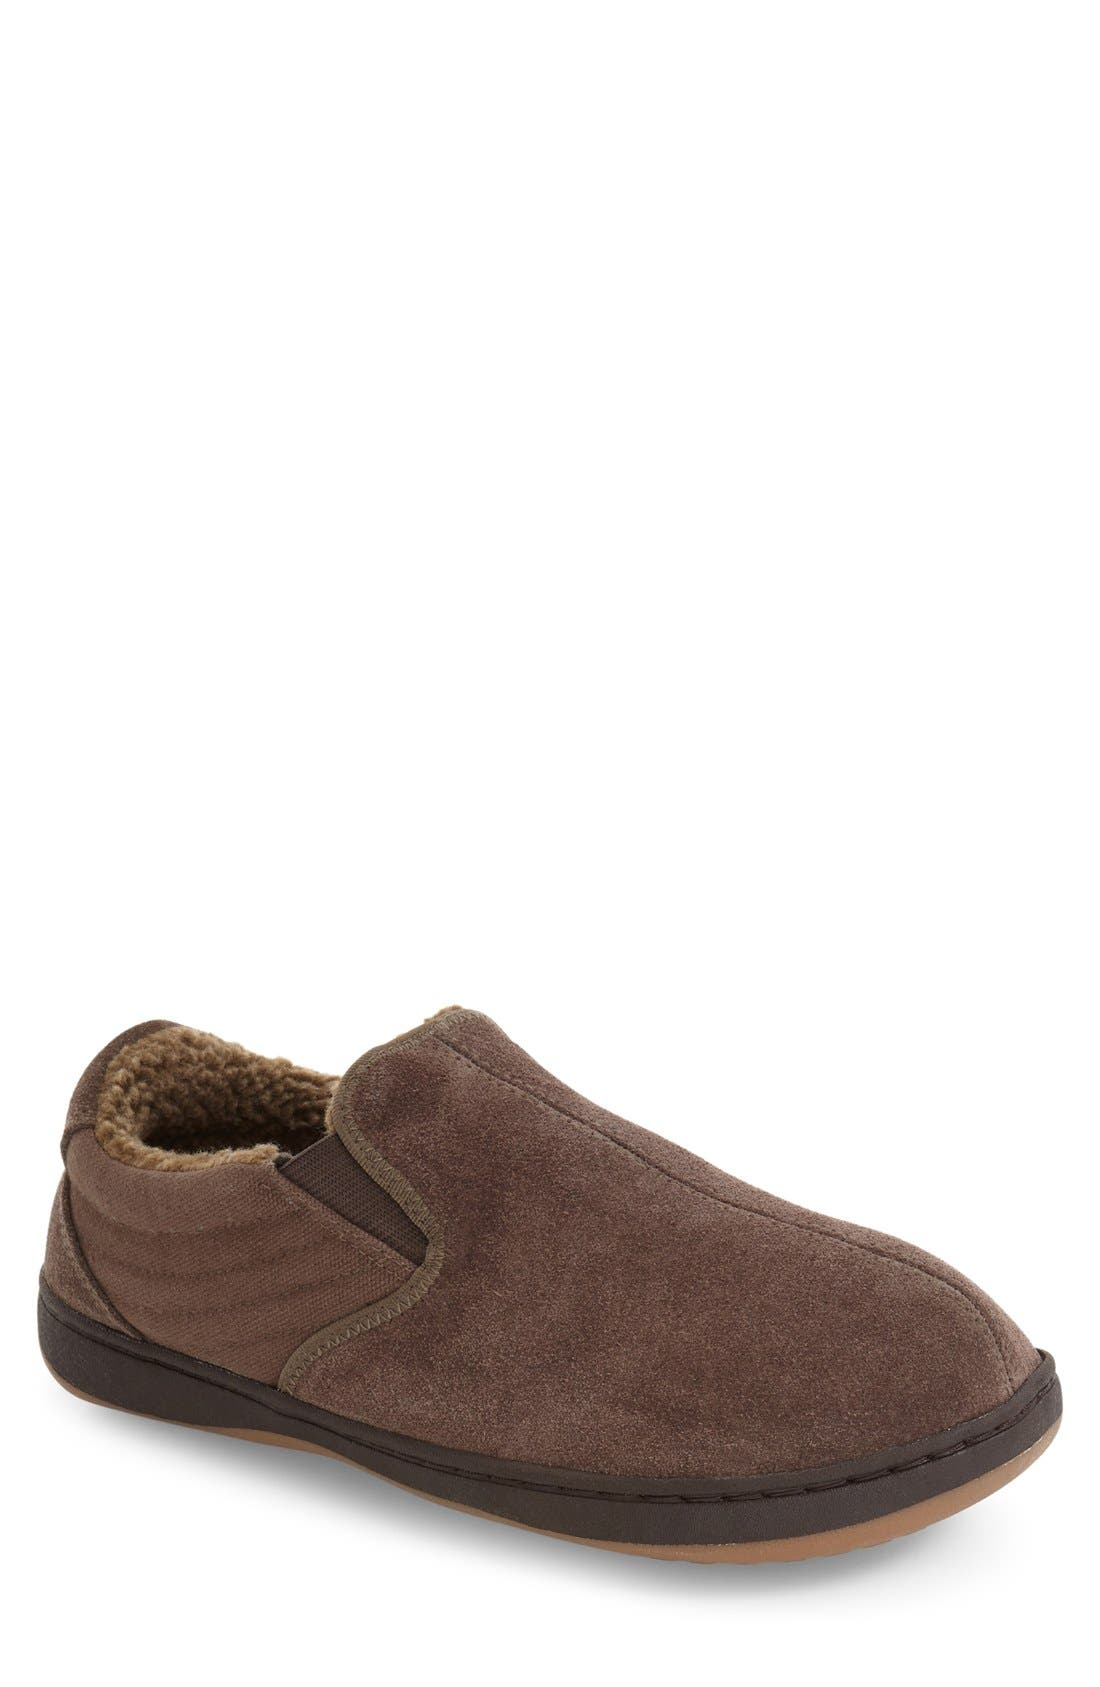 TEMPUR-PEDIC Jadin Slipper